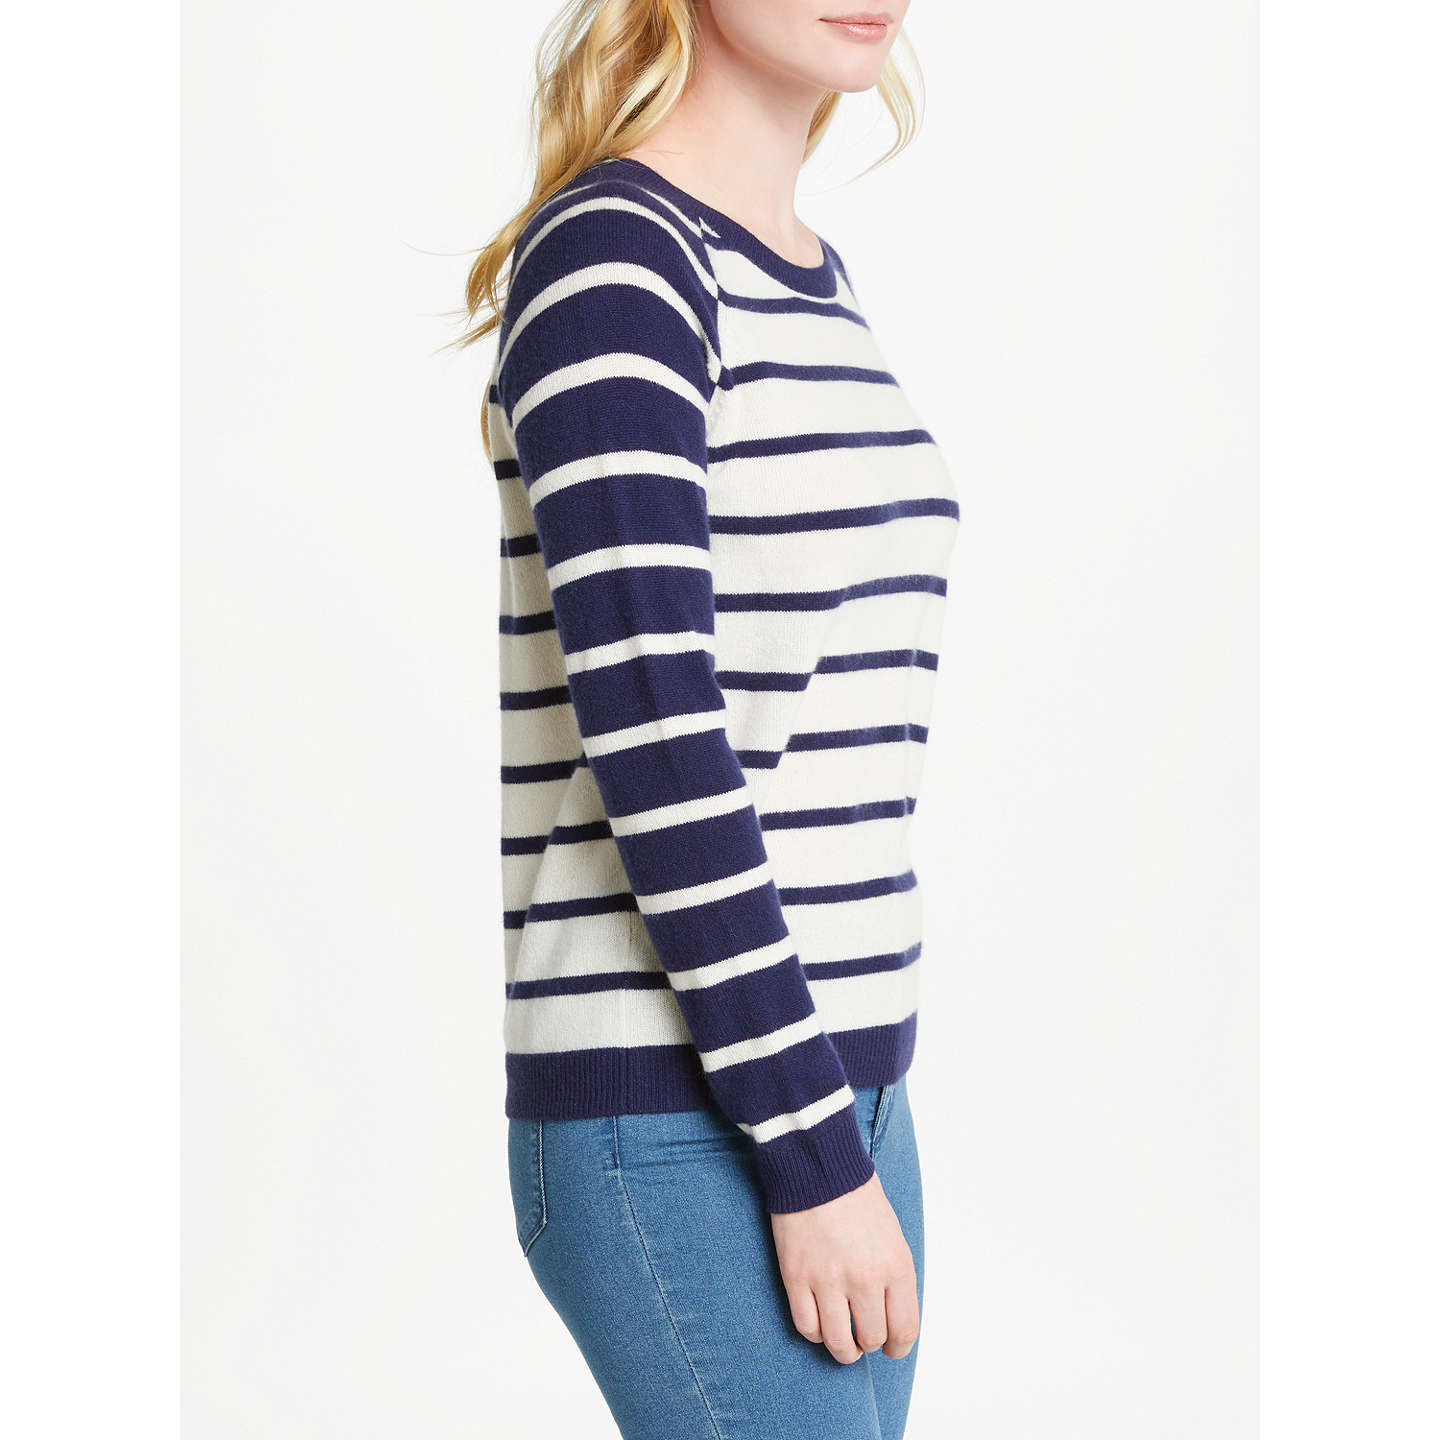 BuyCollection WEEKEND by John Lewis Cashmere Raglan Sleeve Jumper, Navy/Ivory, 8 Online at johnlewis.com